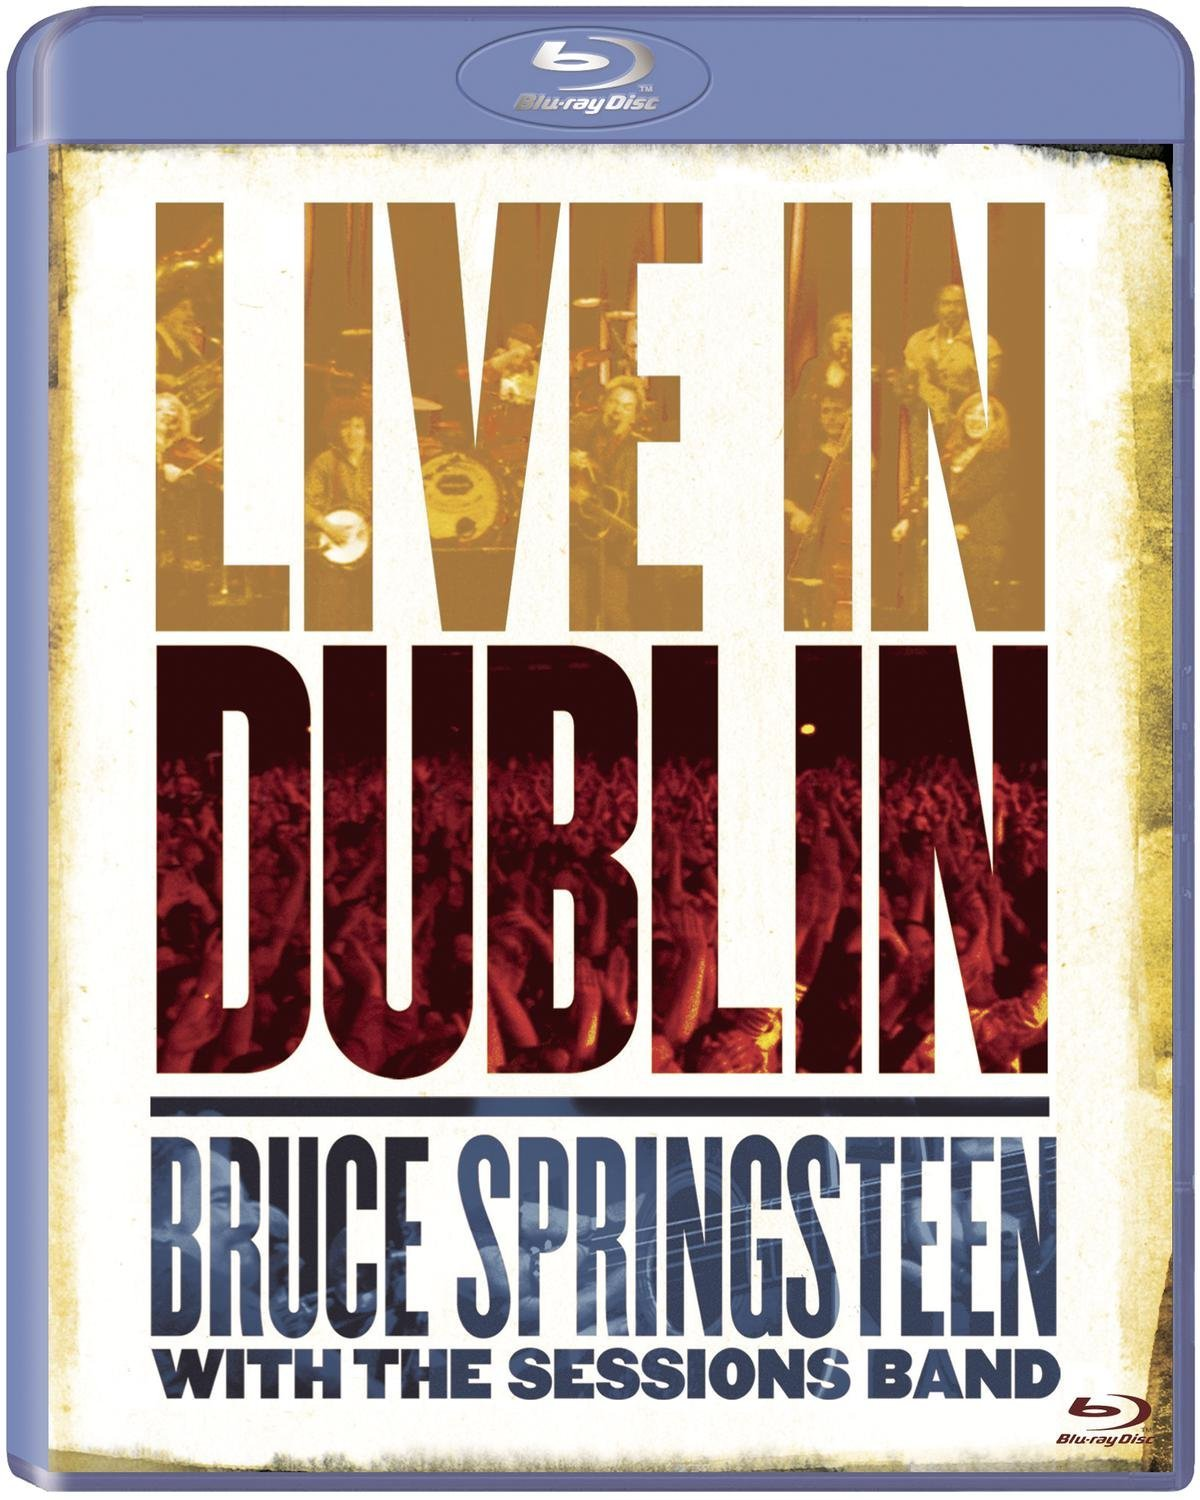 Bruce Springsteen with the Sessions Band: Live in Dublin [Blu-ray] by Columbia